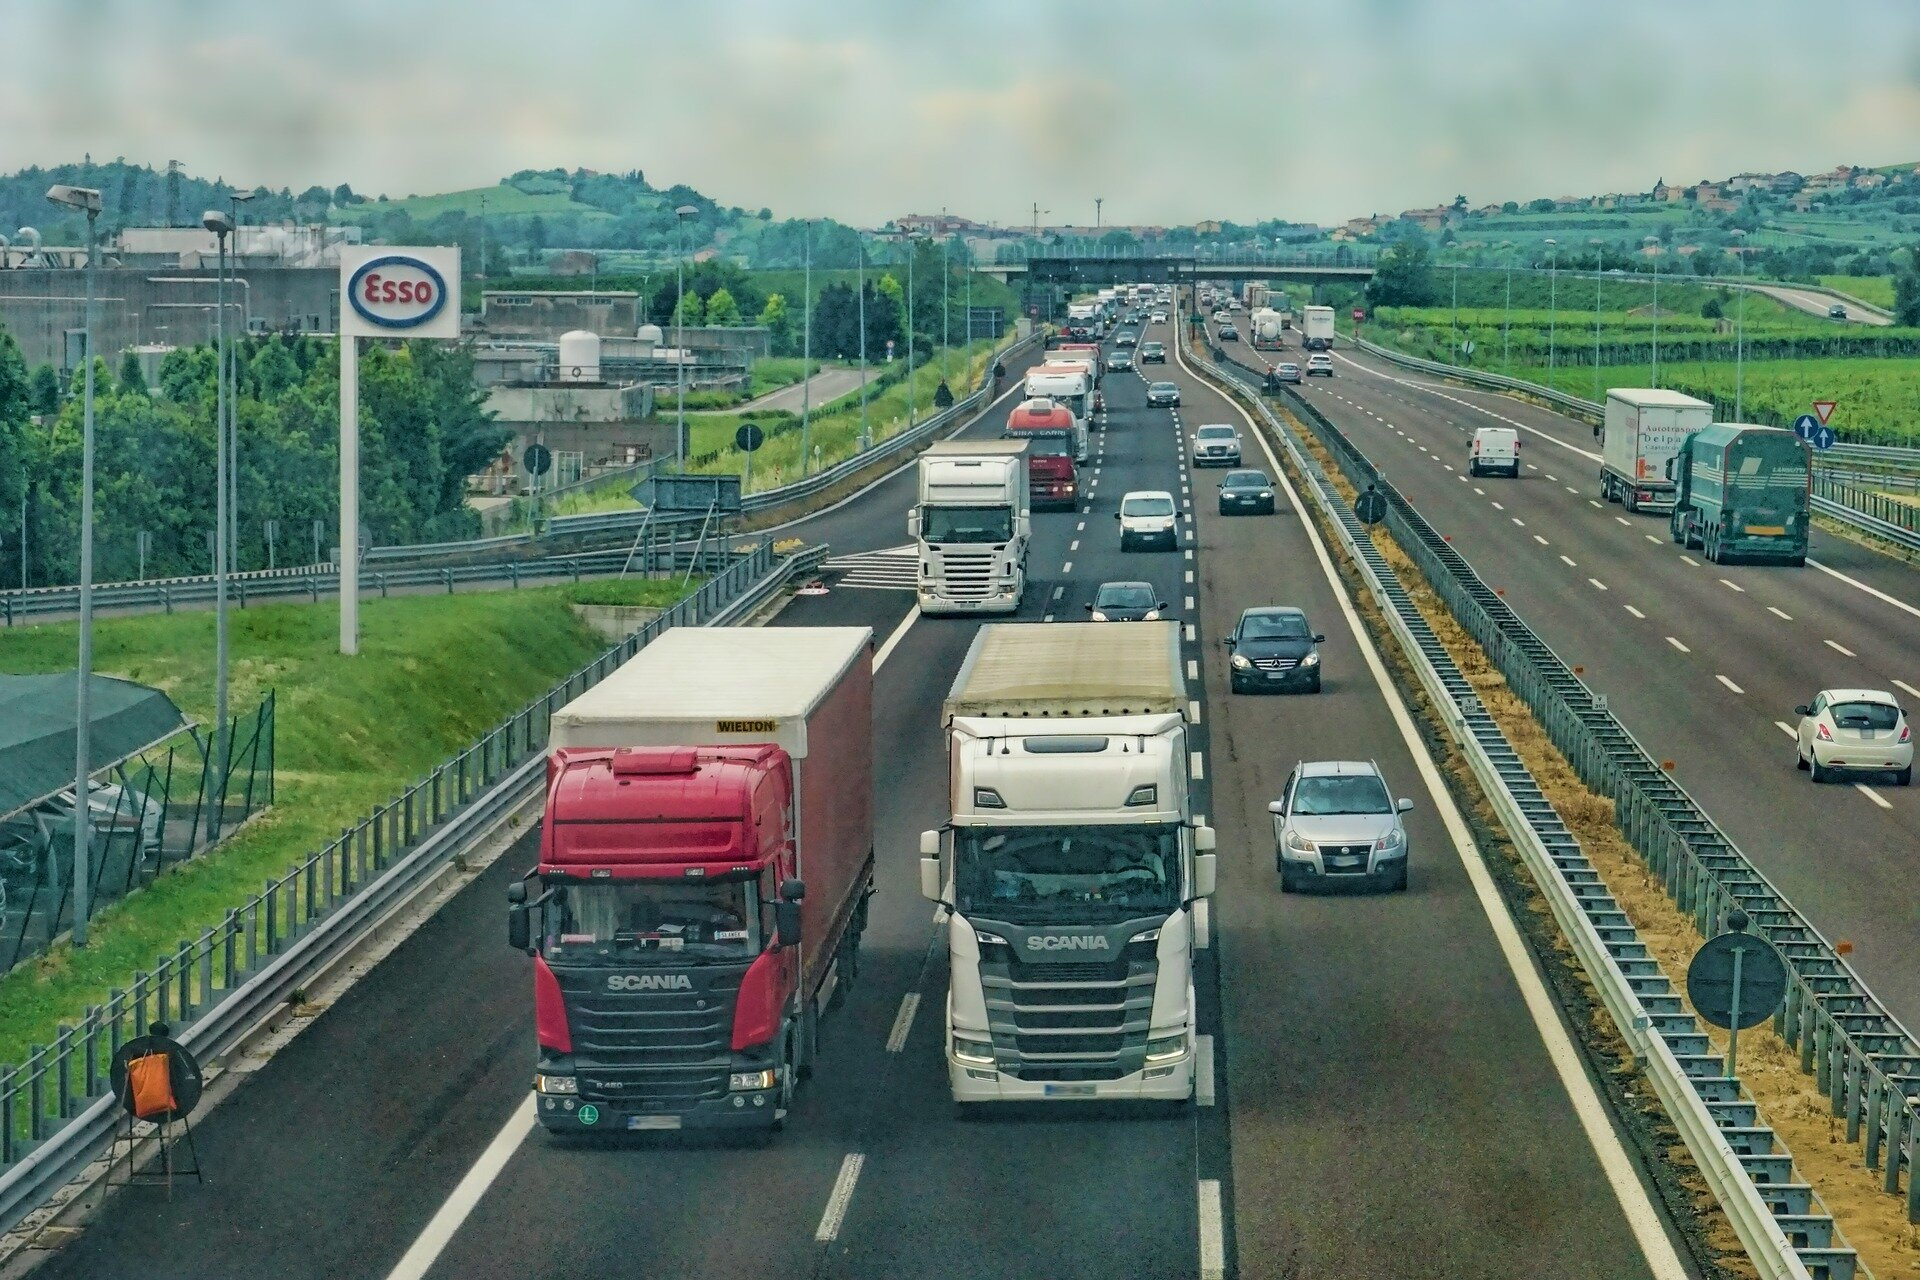 Traffic Related Air Pollution Linked To >> Team Investigates Links To Traffic Related Air Pollution And